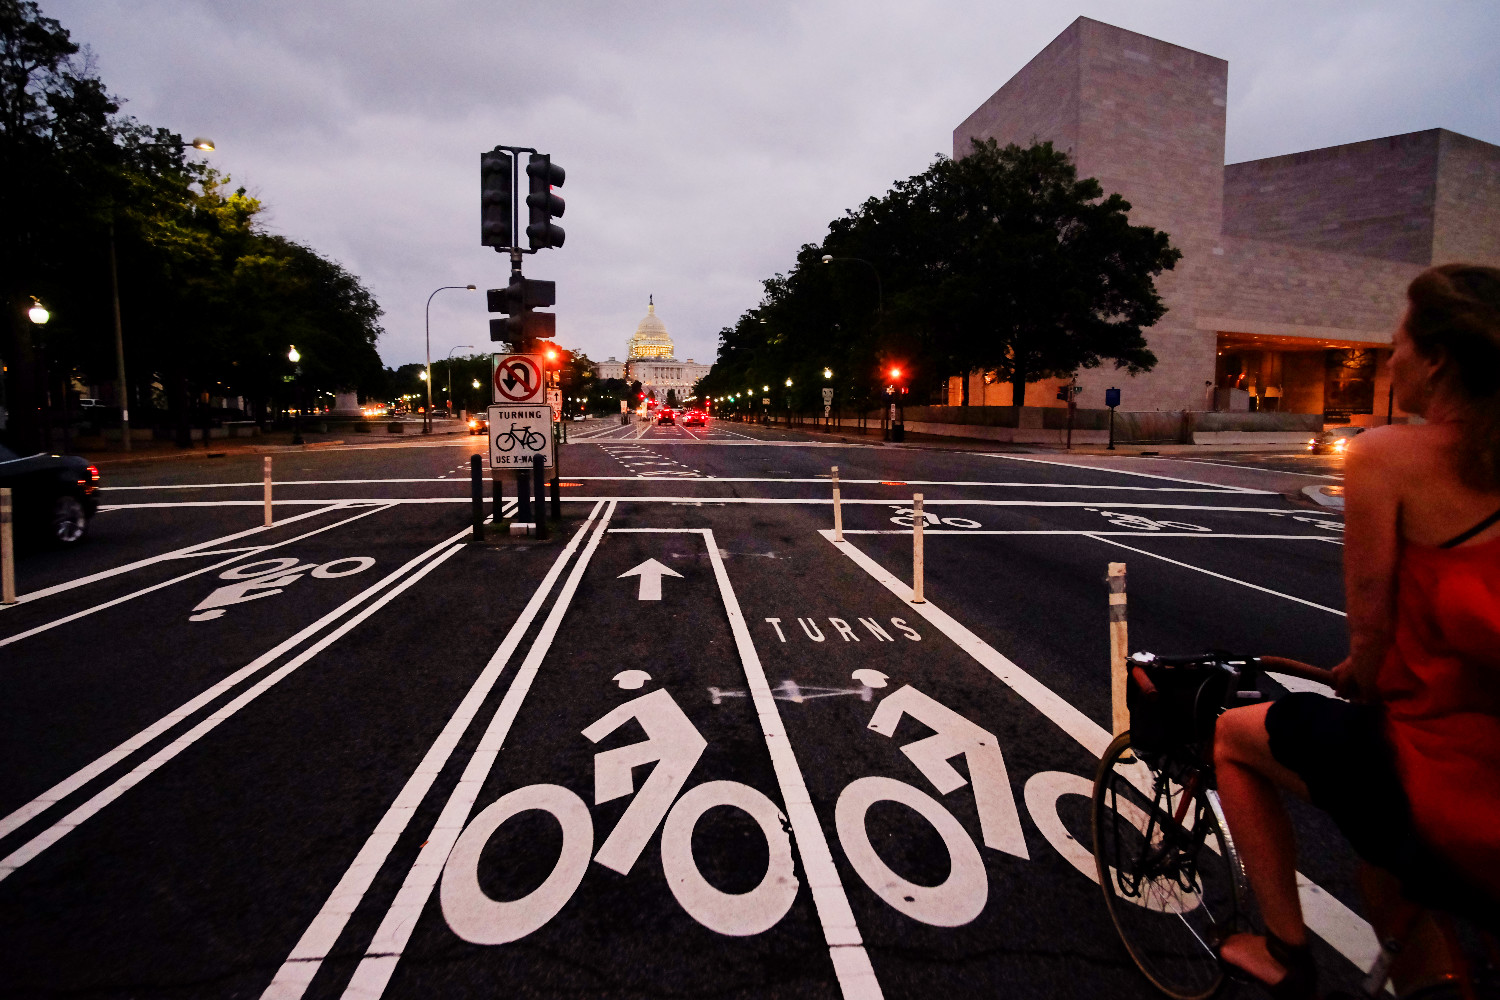 Pennsylvania Avenue. Photo by Kyle Ramey of Bikabout.com